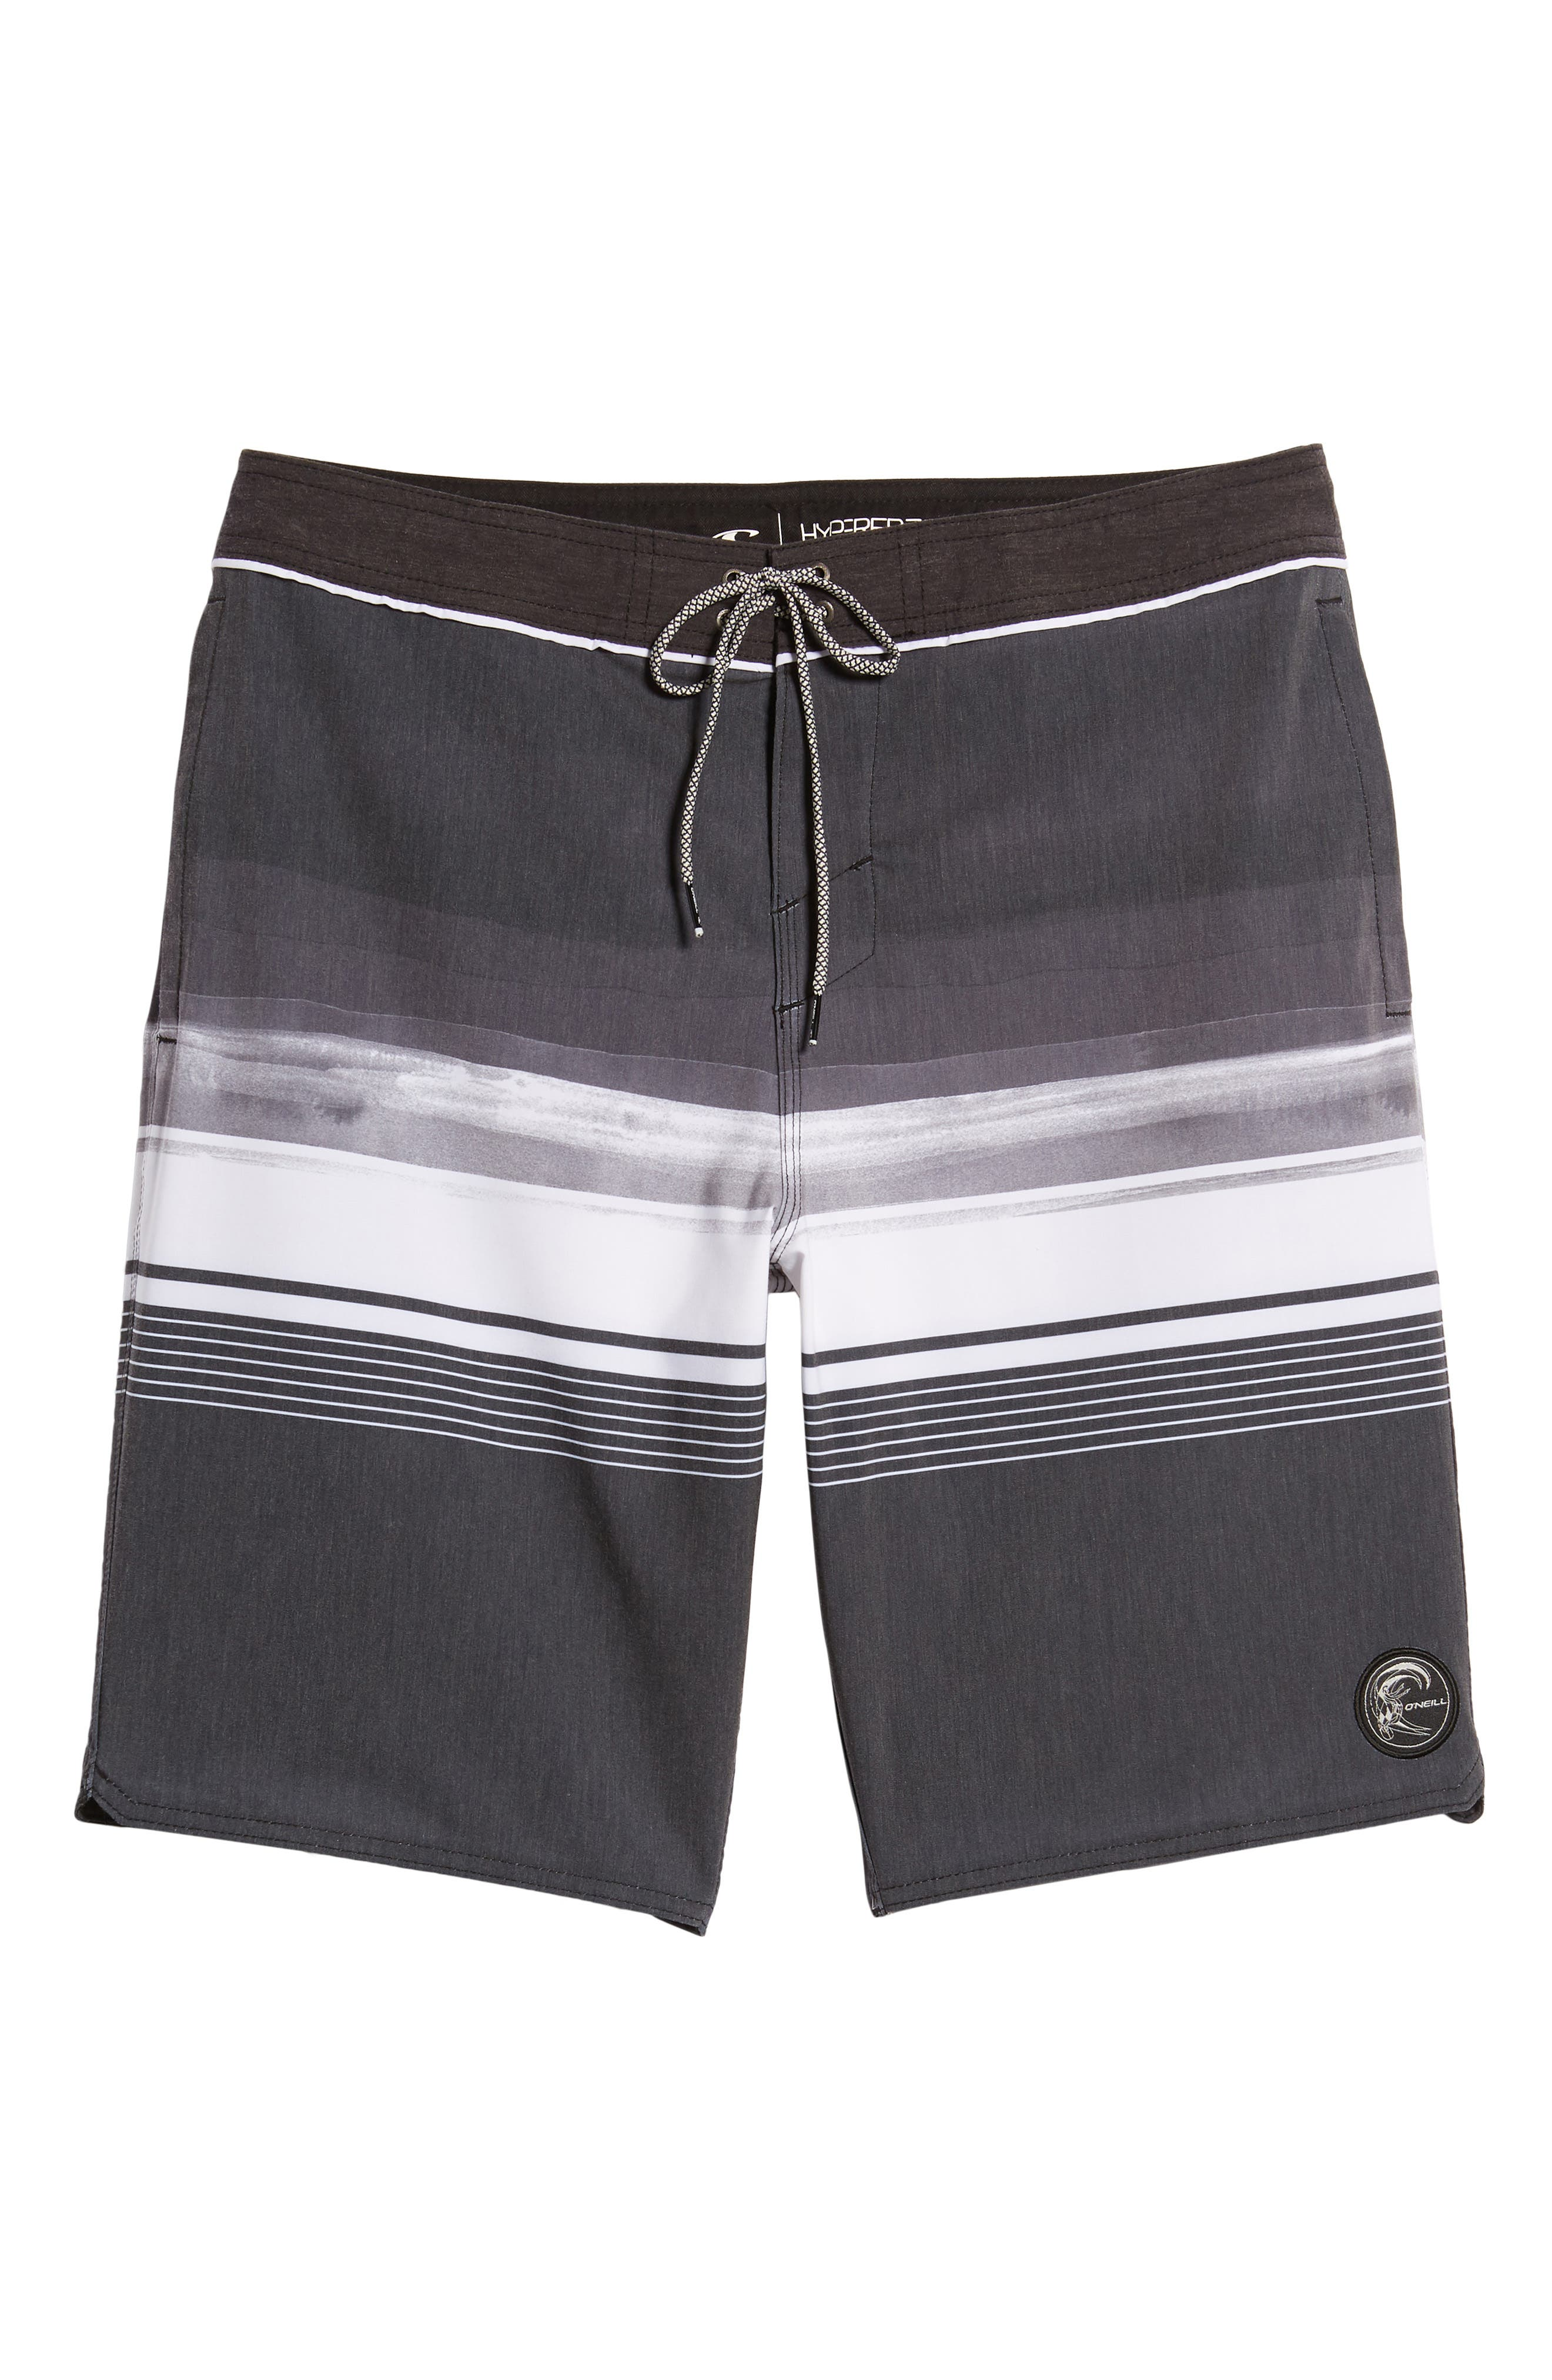 Hyperfreak Source Board Shorts,                             Alternate thumbnail 21, color,